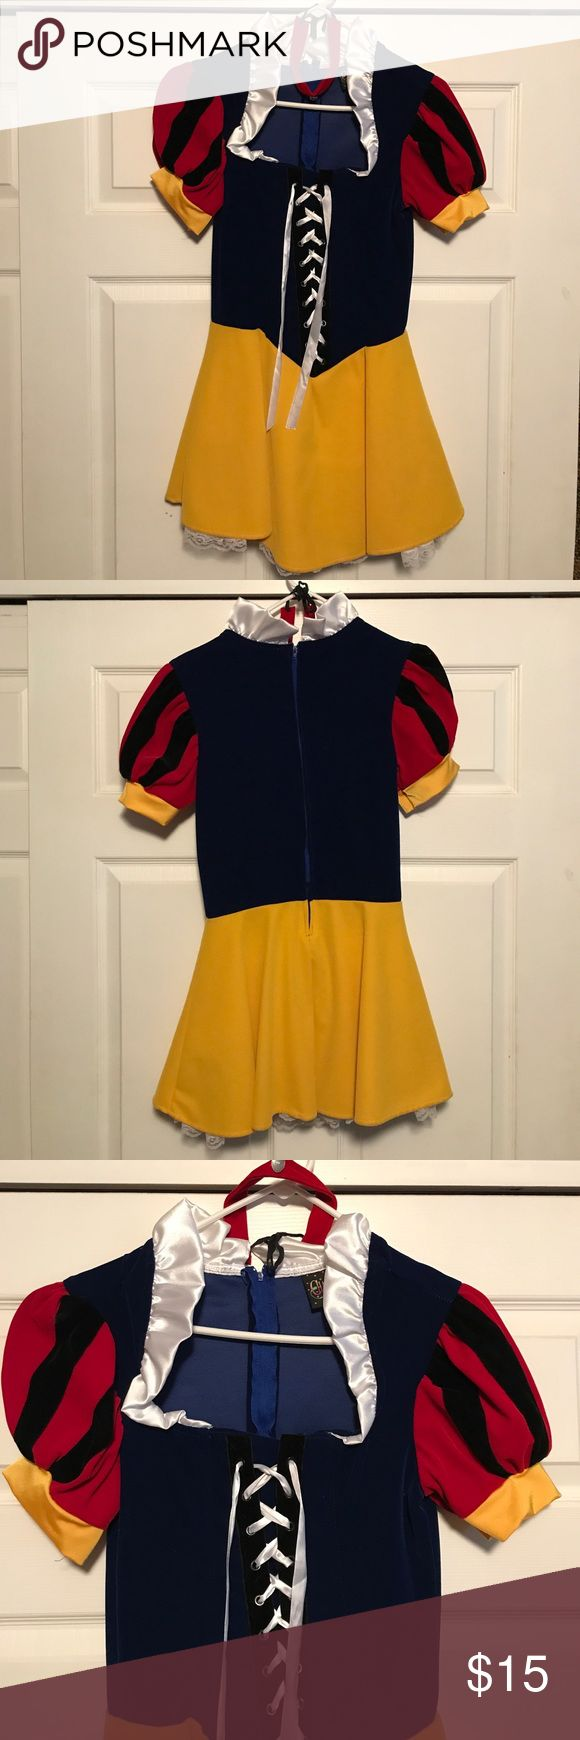 Sexy Snow White costume Comes with dress and choker. Dry clean only. Charades Other